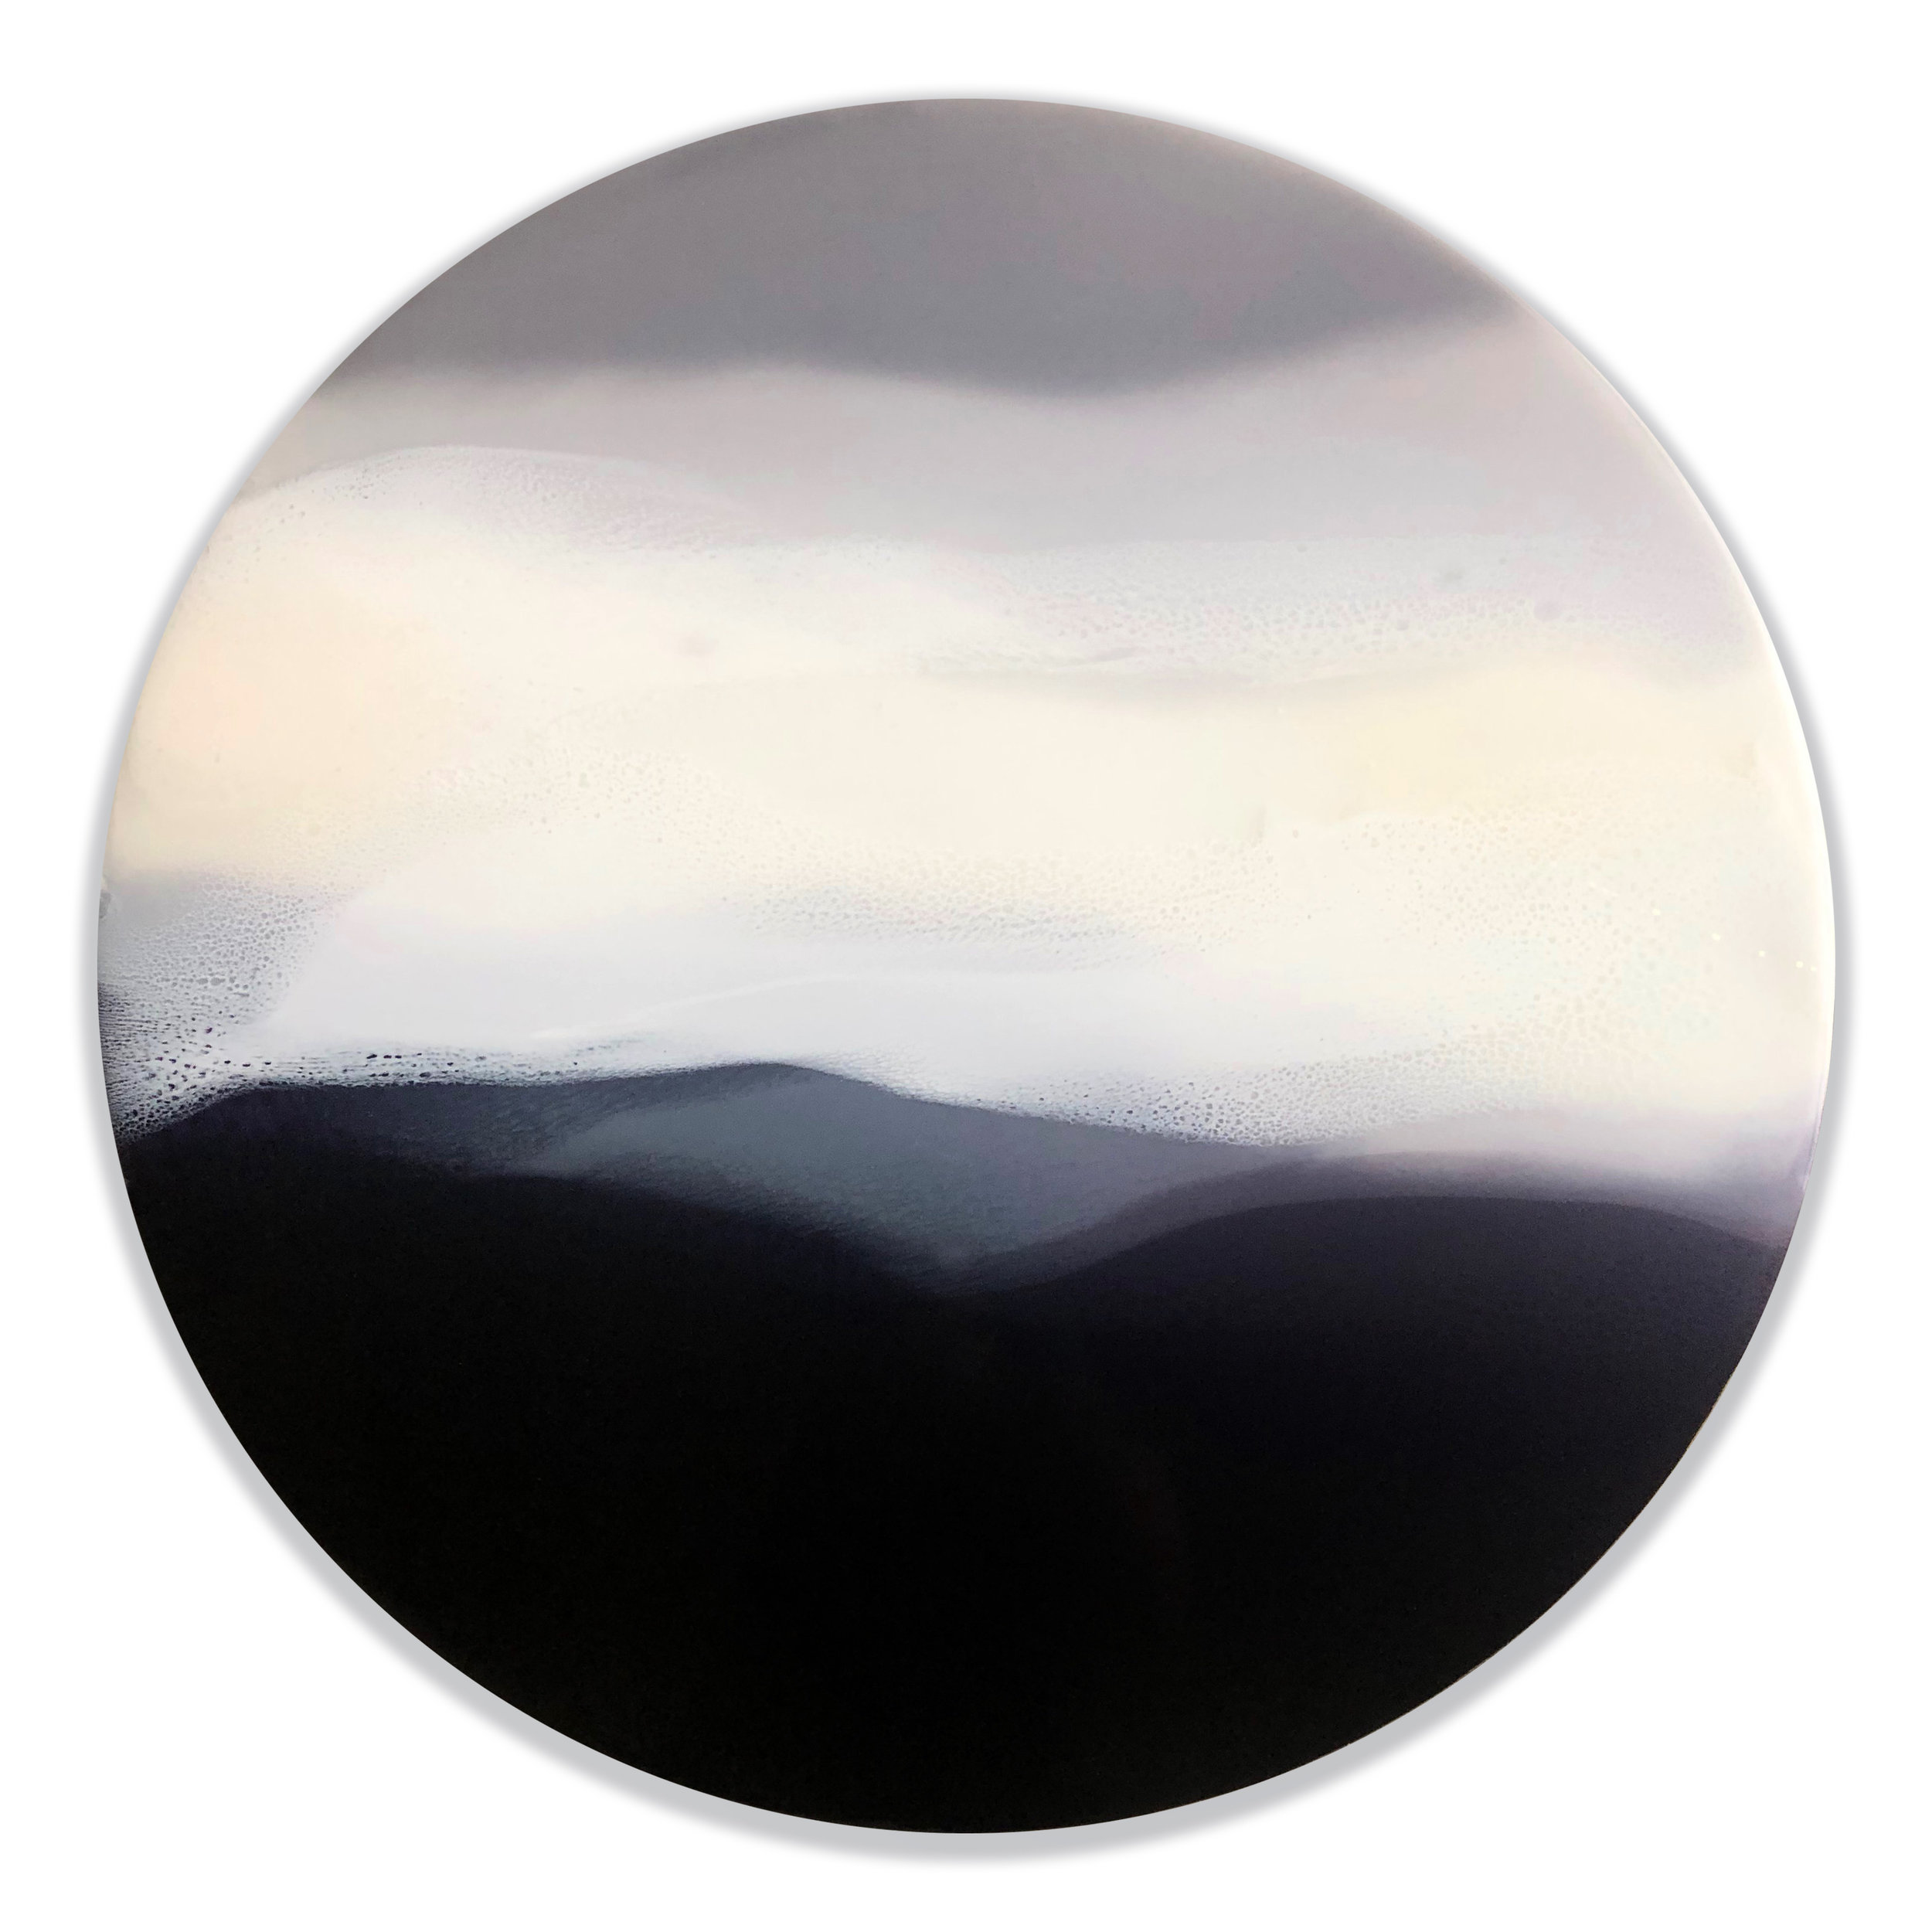 "Landless IV - Marina Dunbar 24"" x 24"" tinted resin on panel$1200Currently exhibiting at INTRO510 King Street"